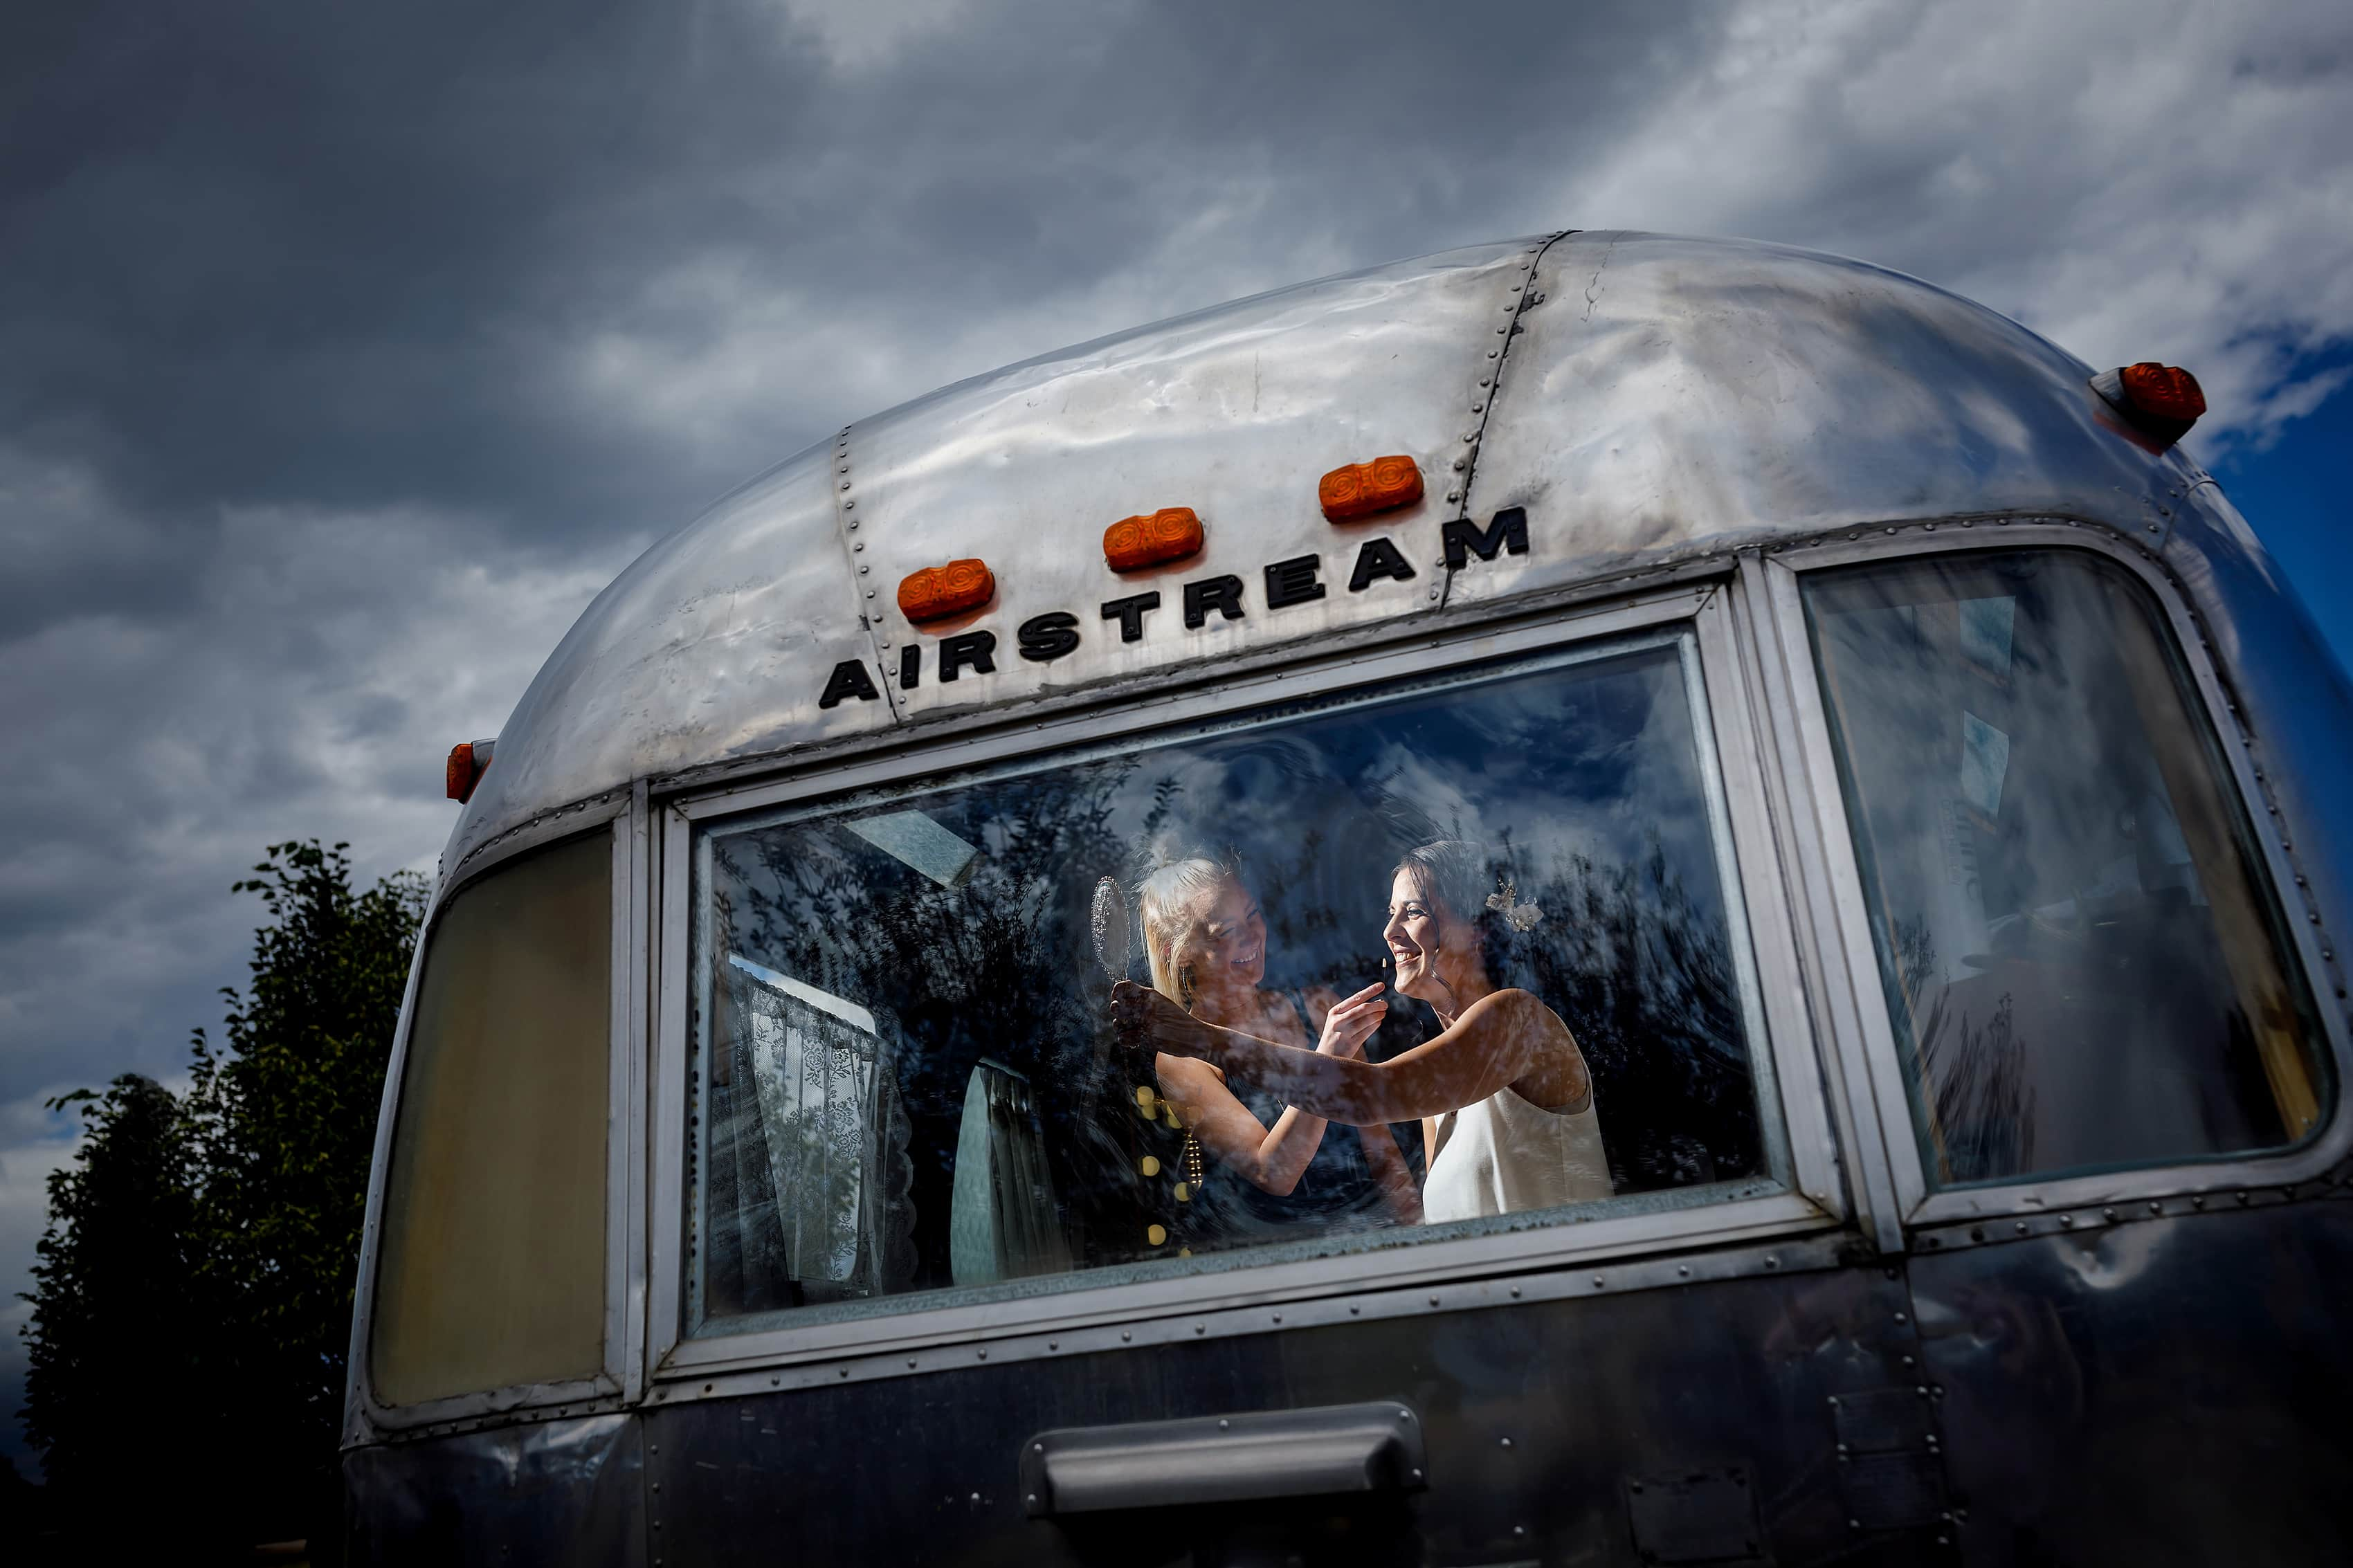 bride has her makeup done in airstream trailer while getting ready for wedding at Lionsgate Event Center